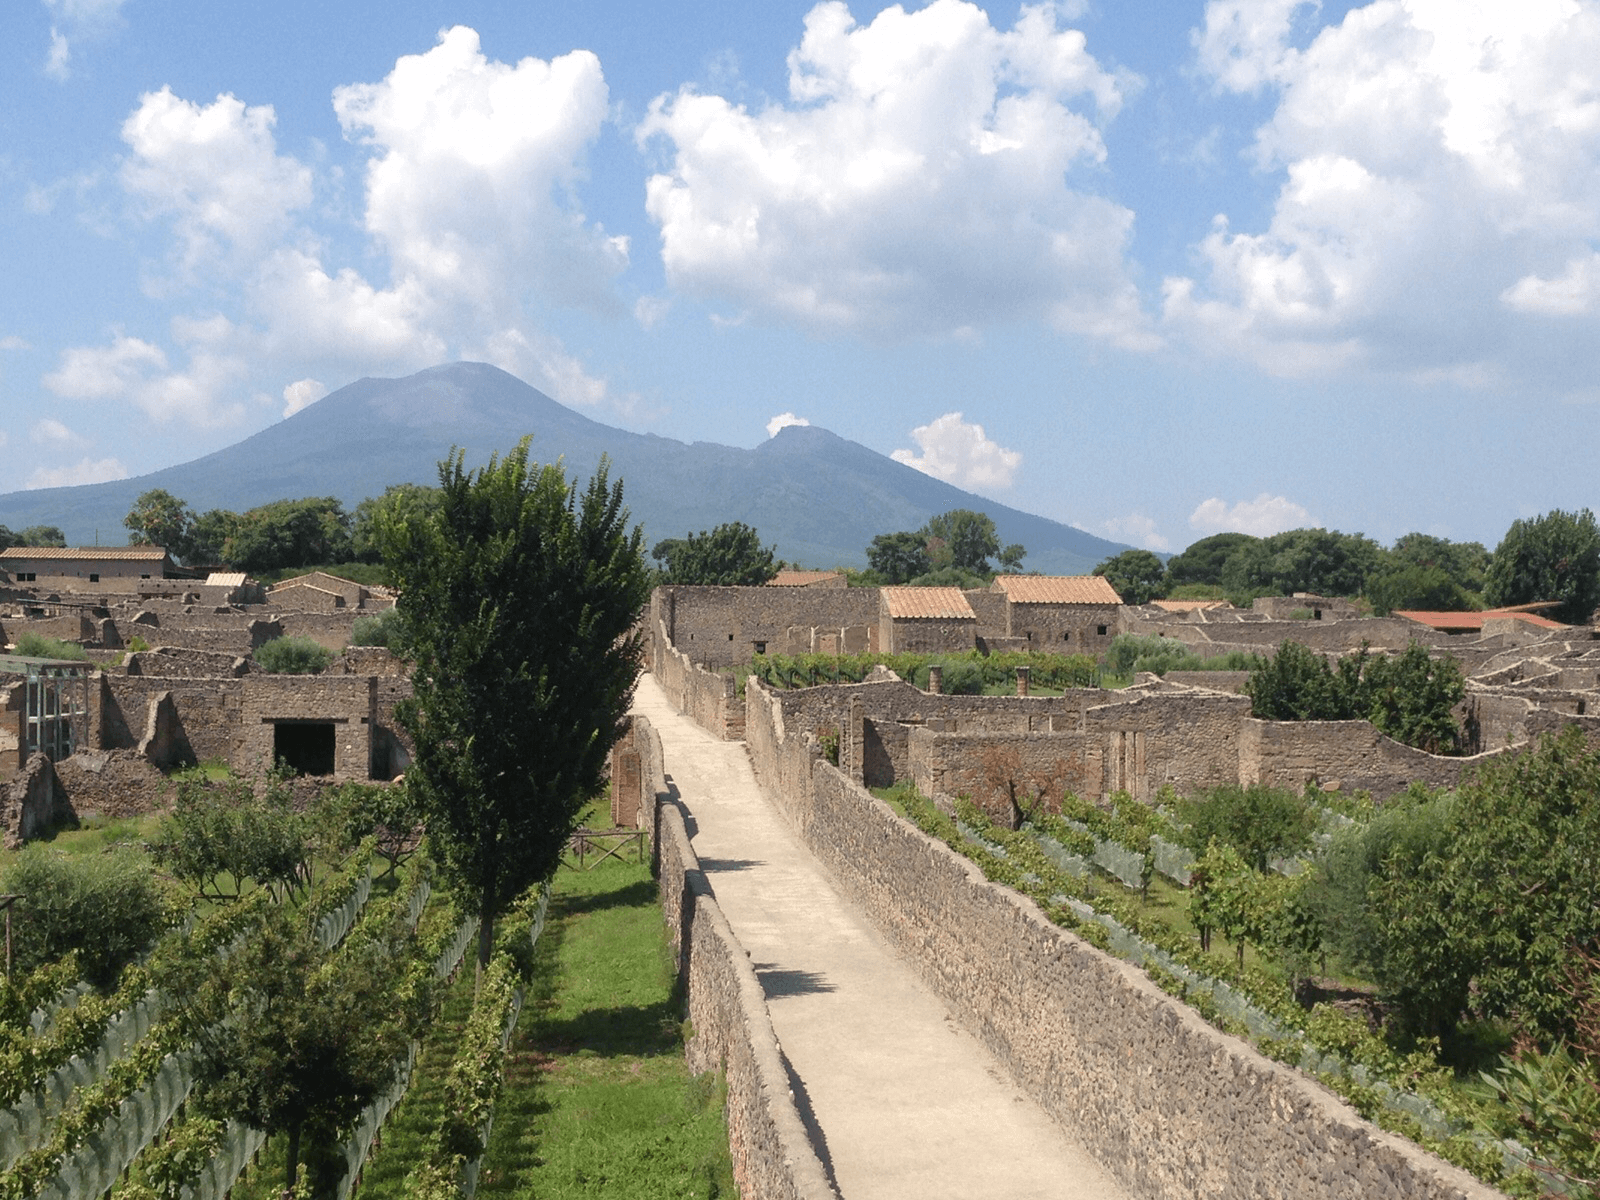 City of Pompeii with Mt. Vesuvius looming in the background.